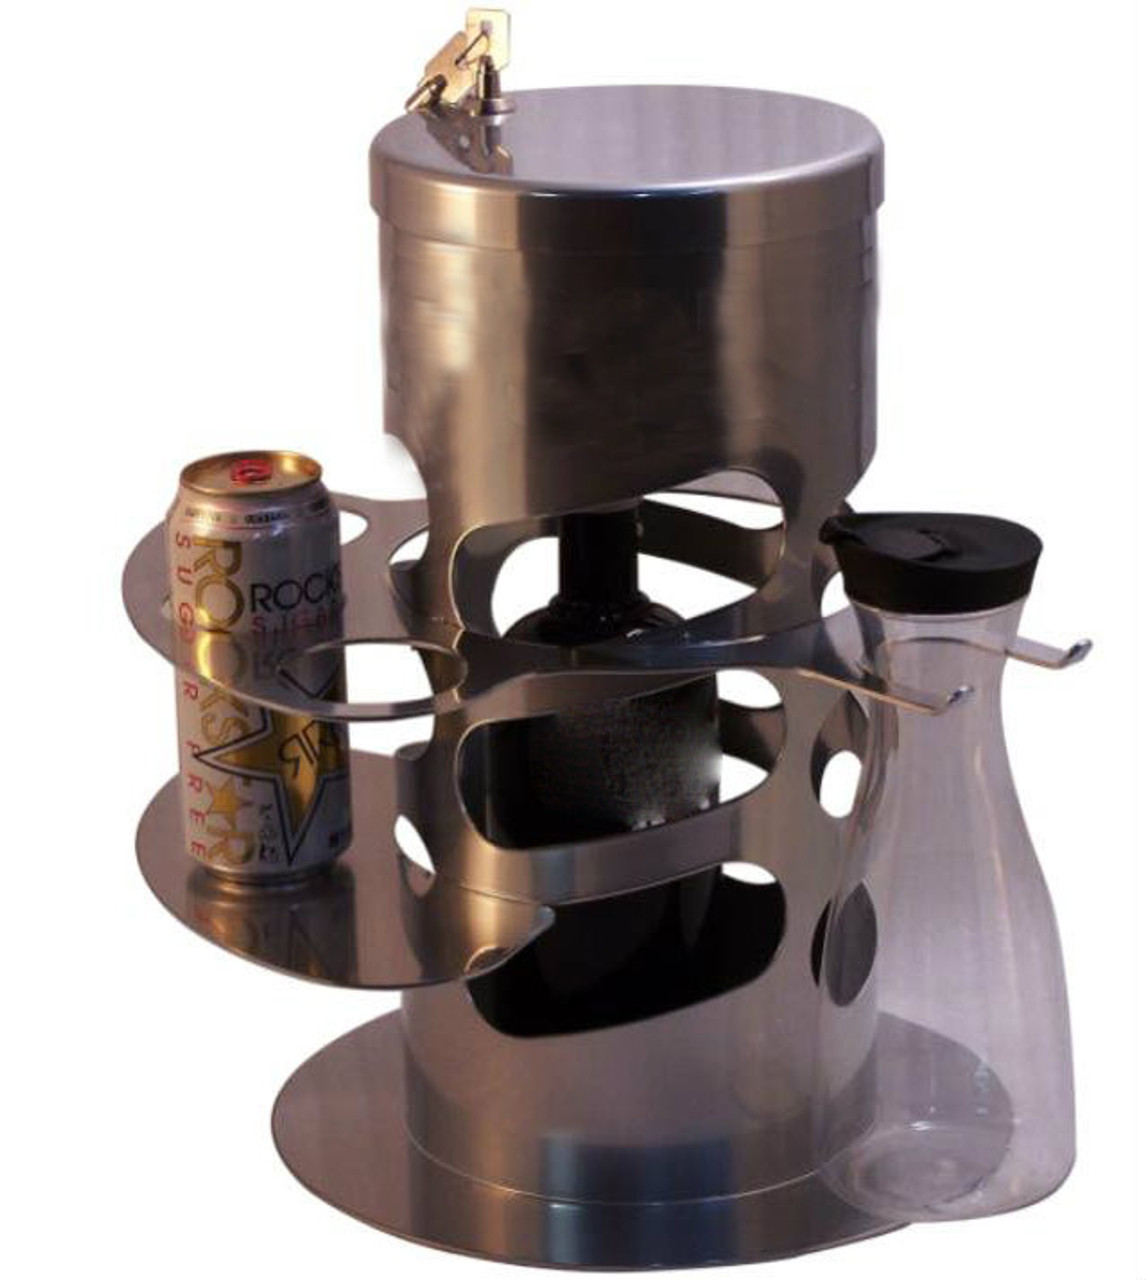 Bottle-Locking-Lock-cage-Bottle service-Delivery-Table-security